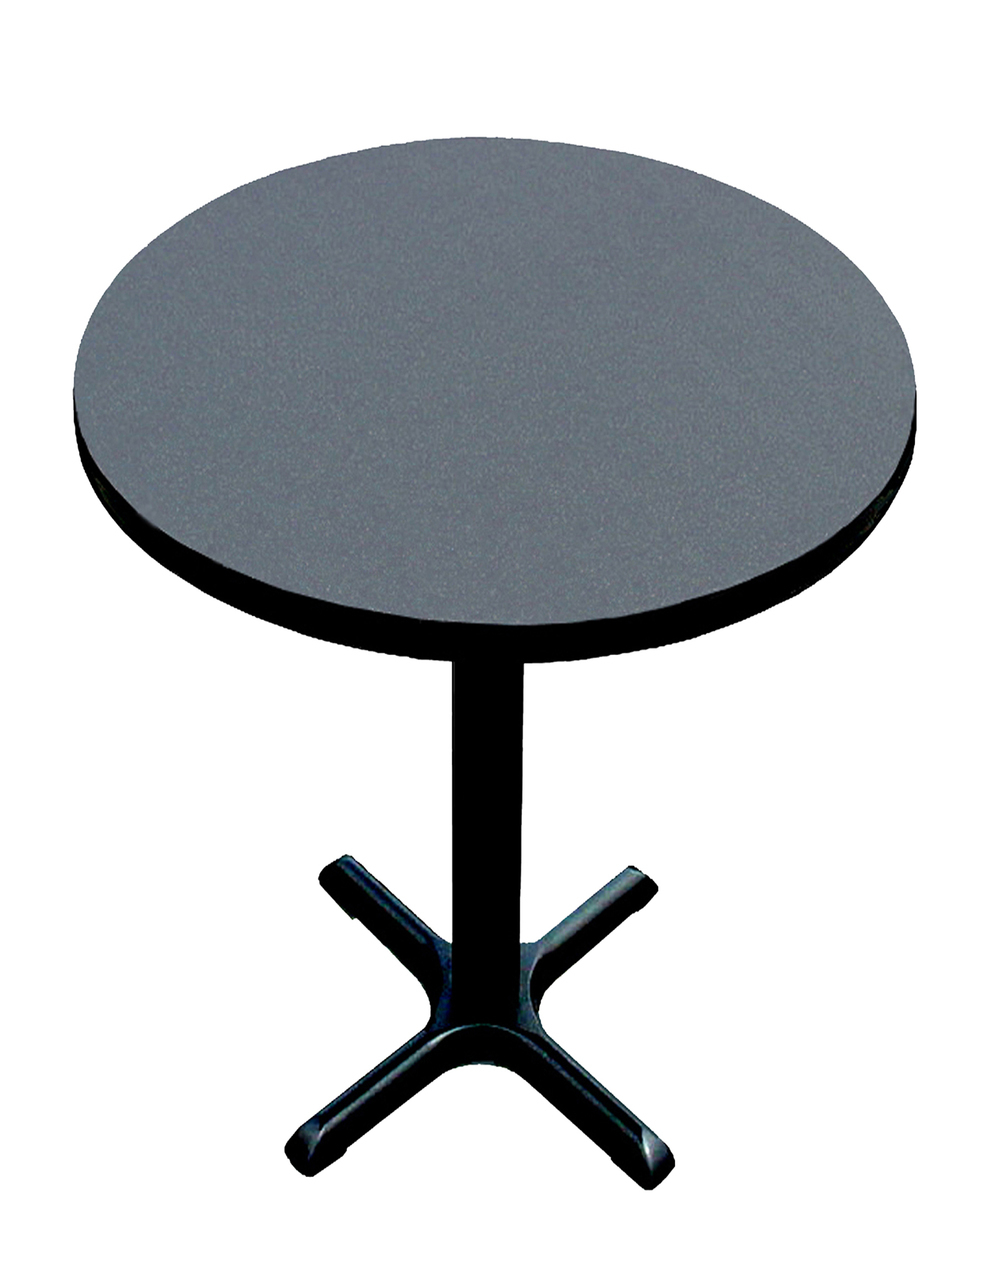 Correll BXBR High Pressure Round Café And Breakroom Table Black - Standing cafe table